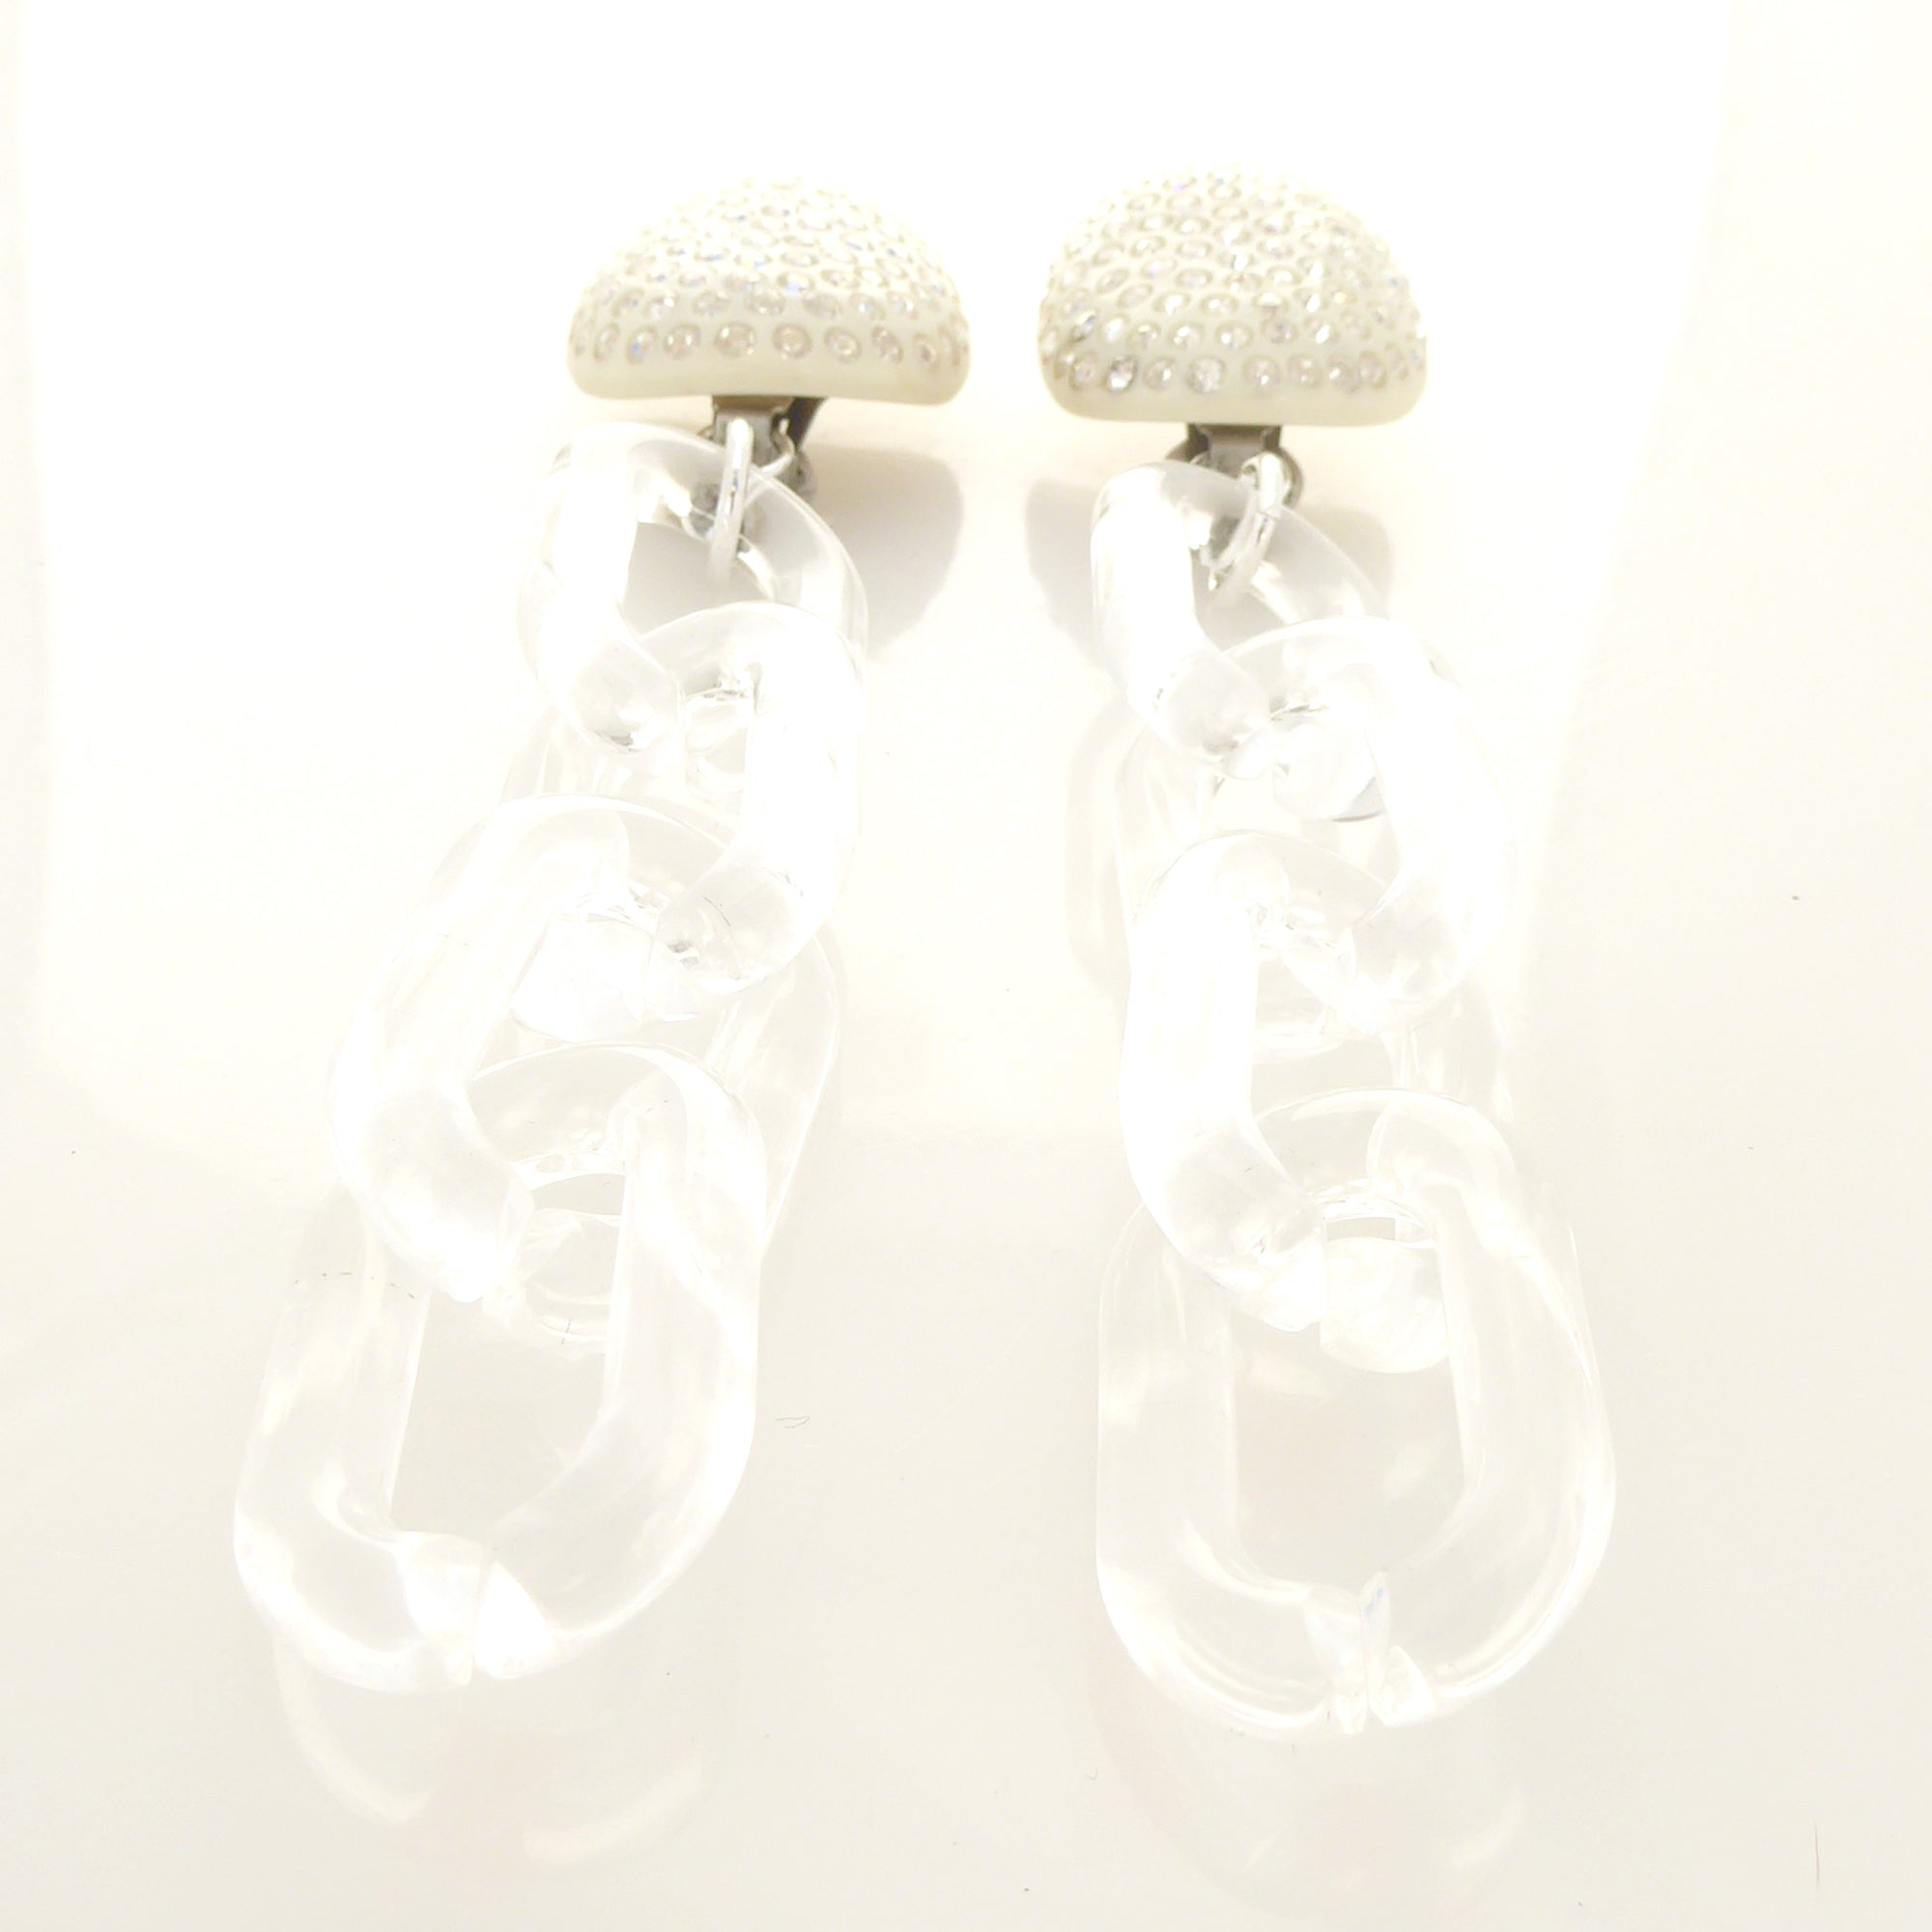 Cream celluloid rhinestone earrings